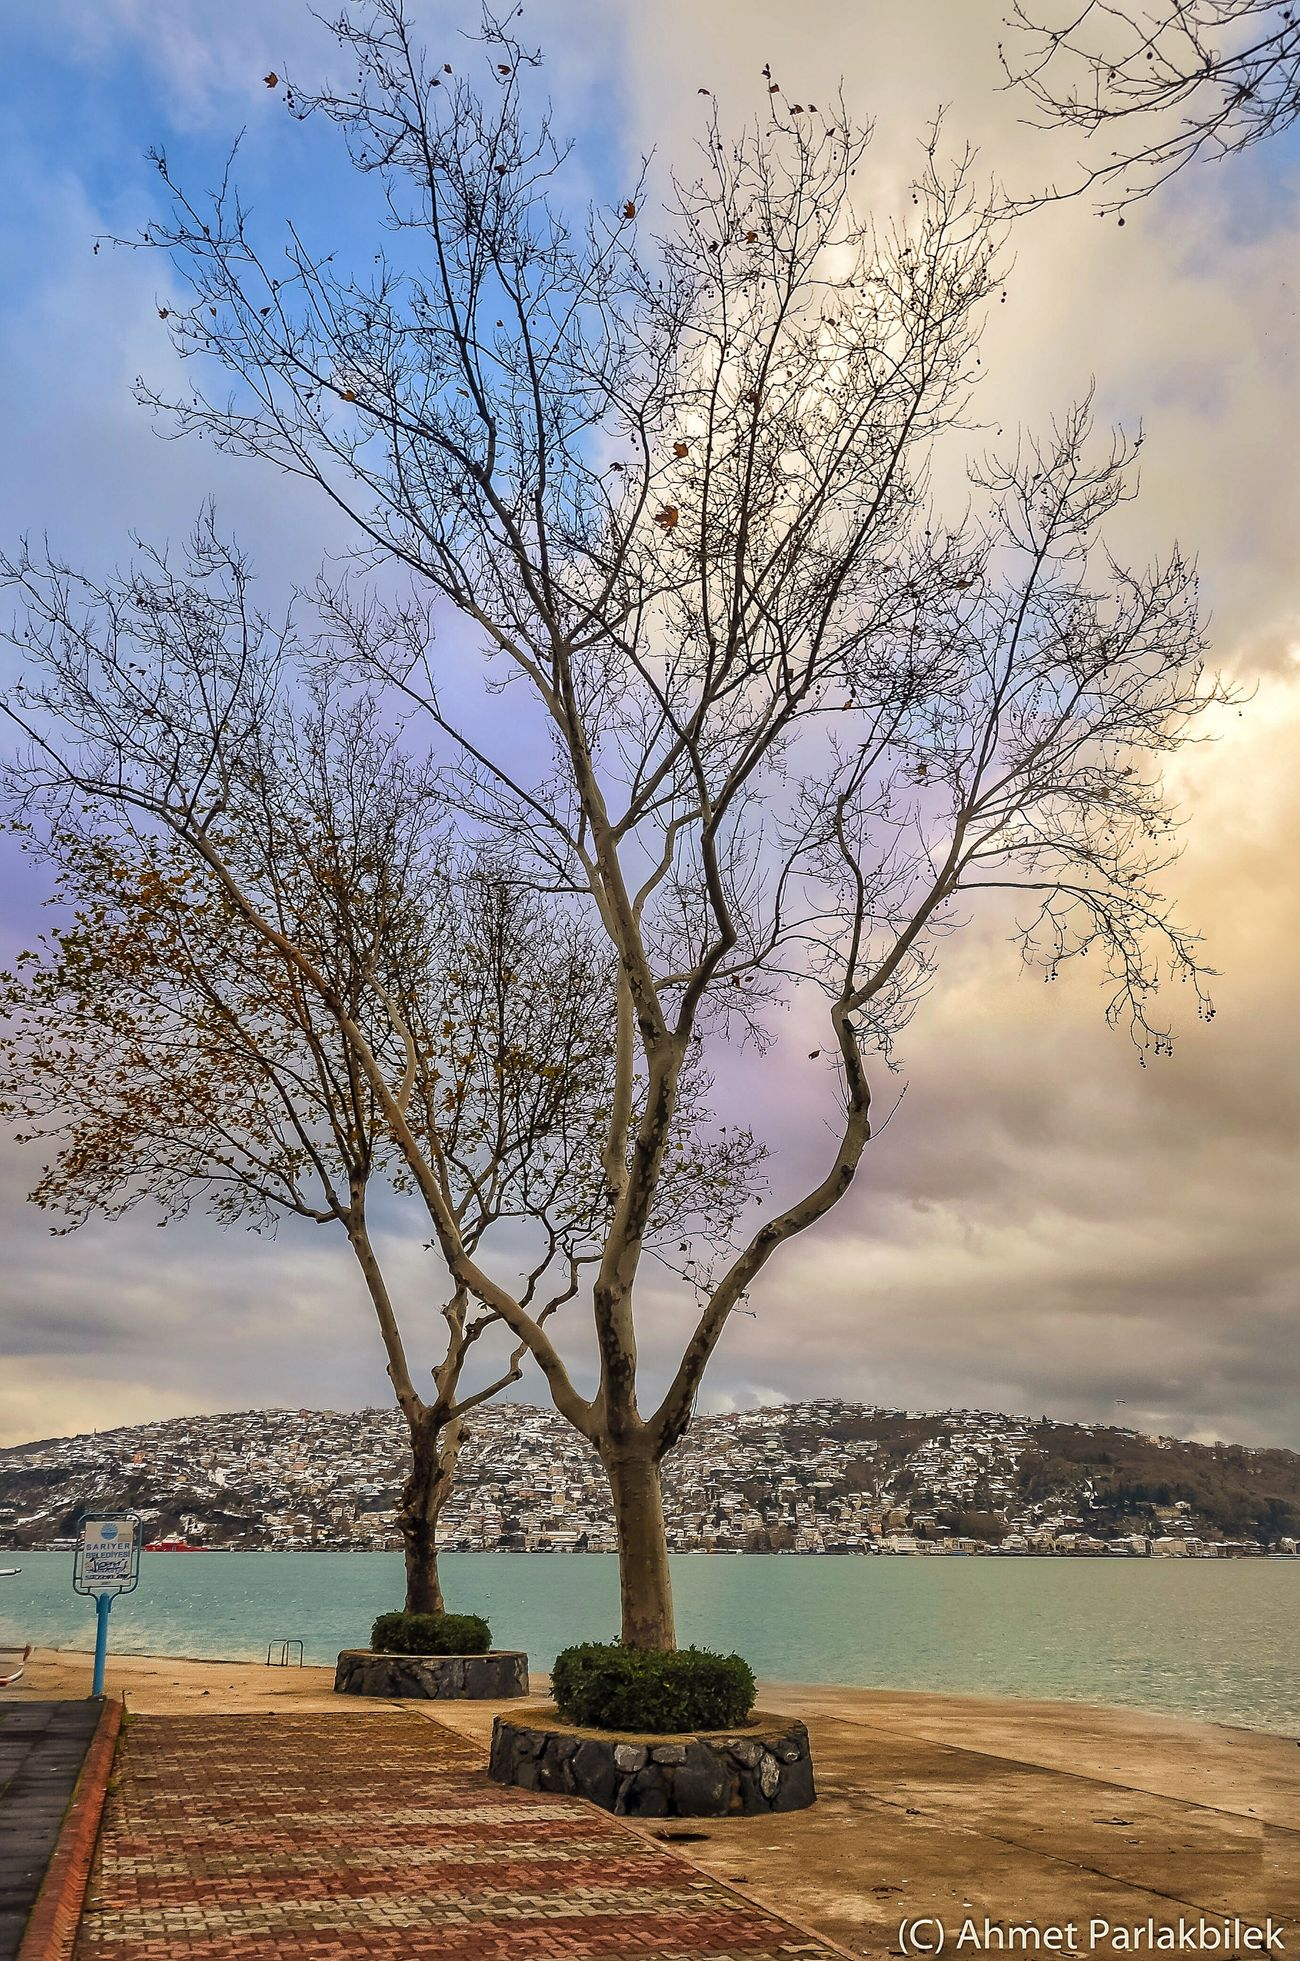 Kireçburnu Tree Sea Nature Water Sky Bare Tree Scenics No People Tranquility Tranquil Scene Outdoors Beauty In Nature Branch Day Horizon Over Water Beach